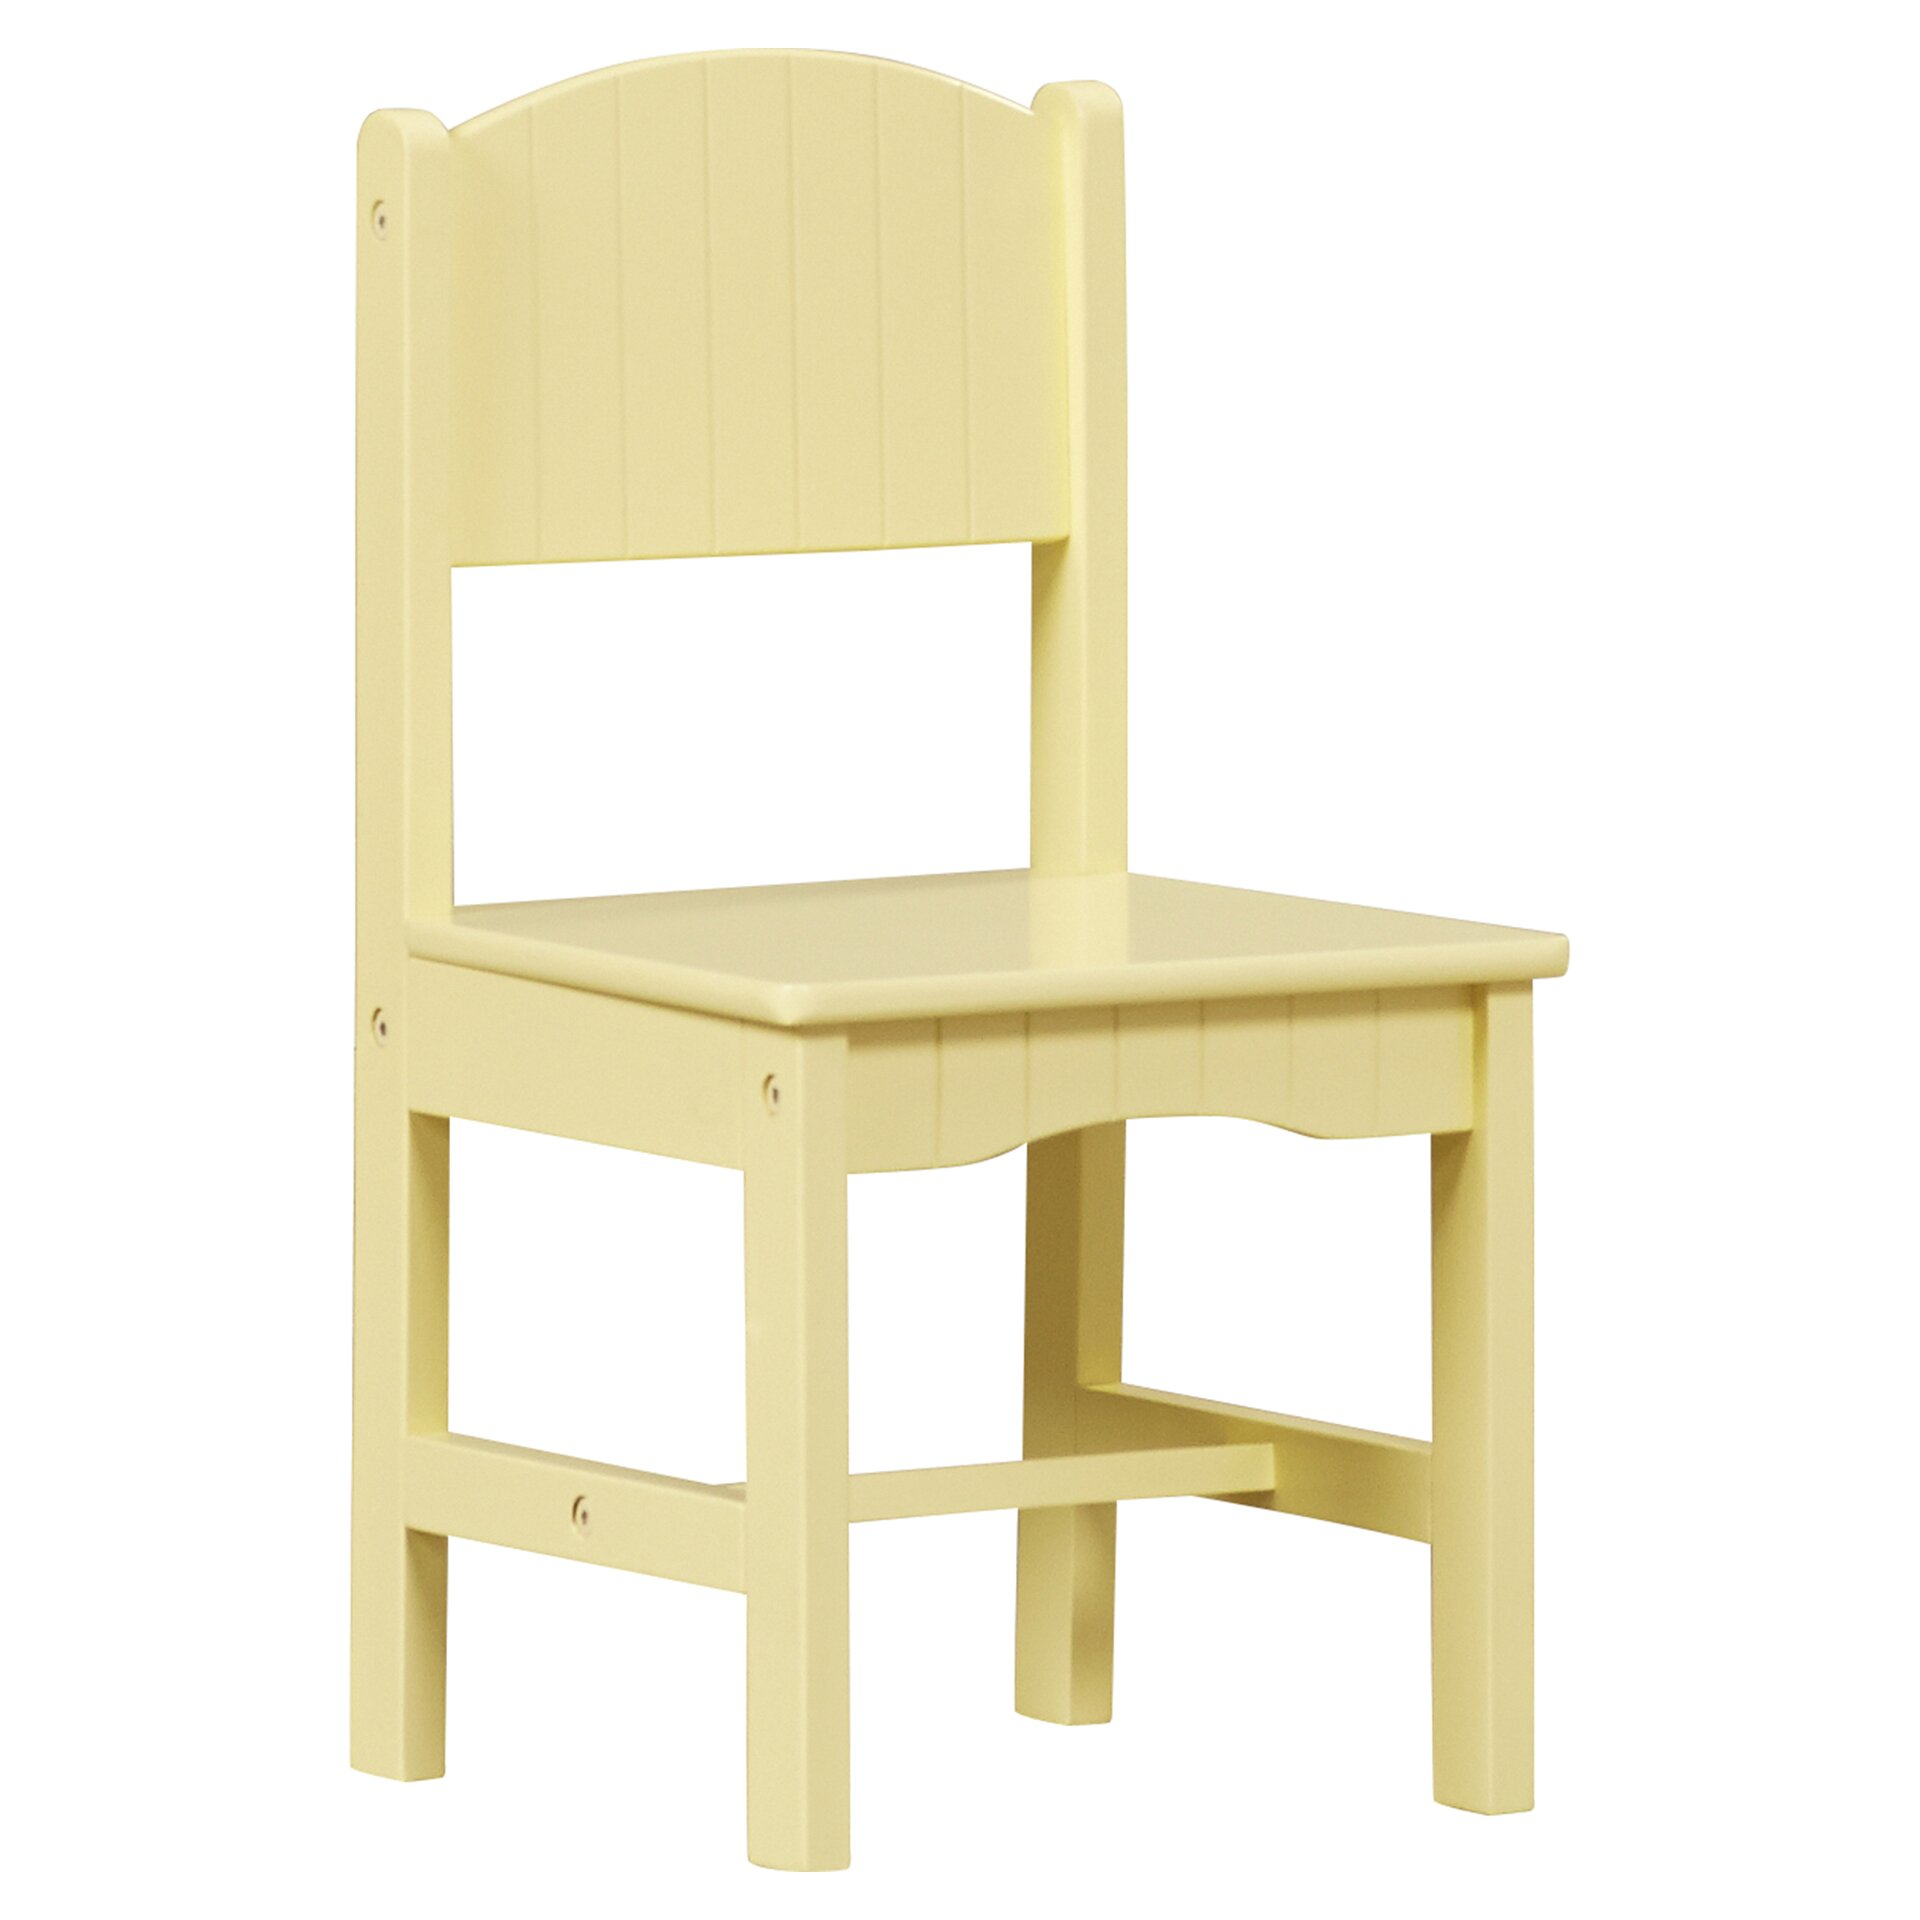 Amazing Kidkraft Nantucket Kids 4 Piece Table And Chair Set Kidkraft Short Links Chair Design For Home Short Linksinfo